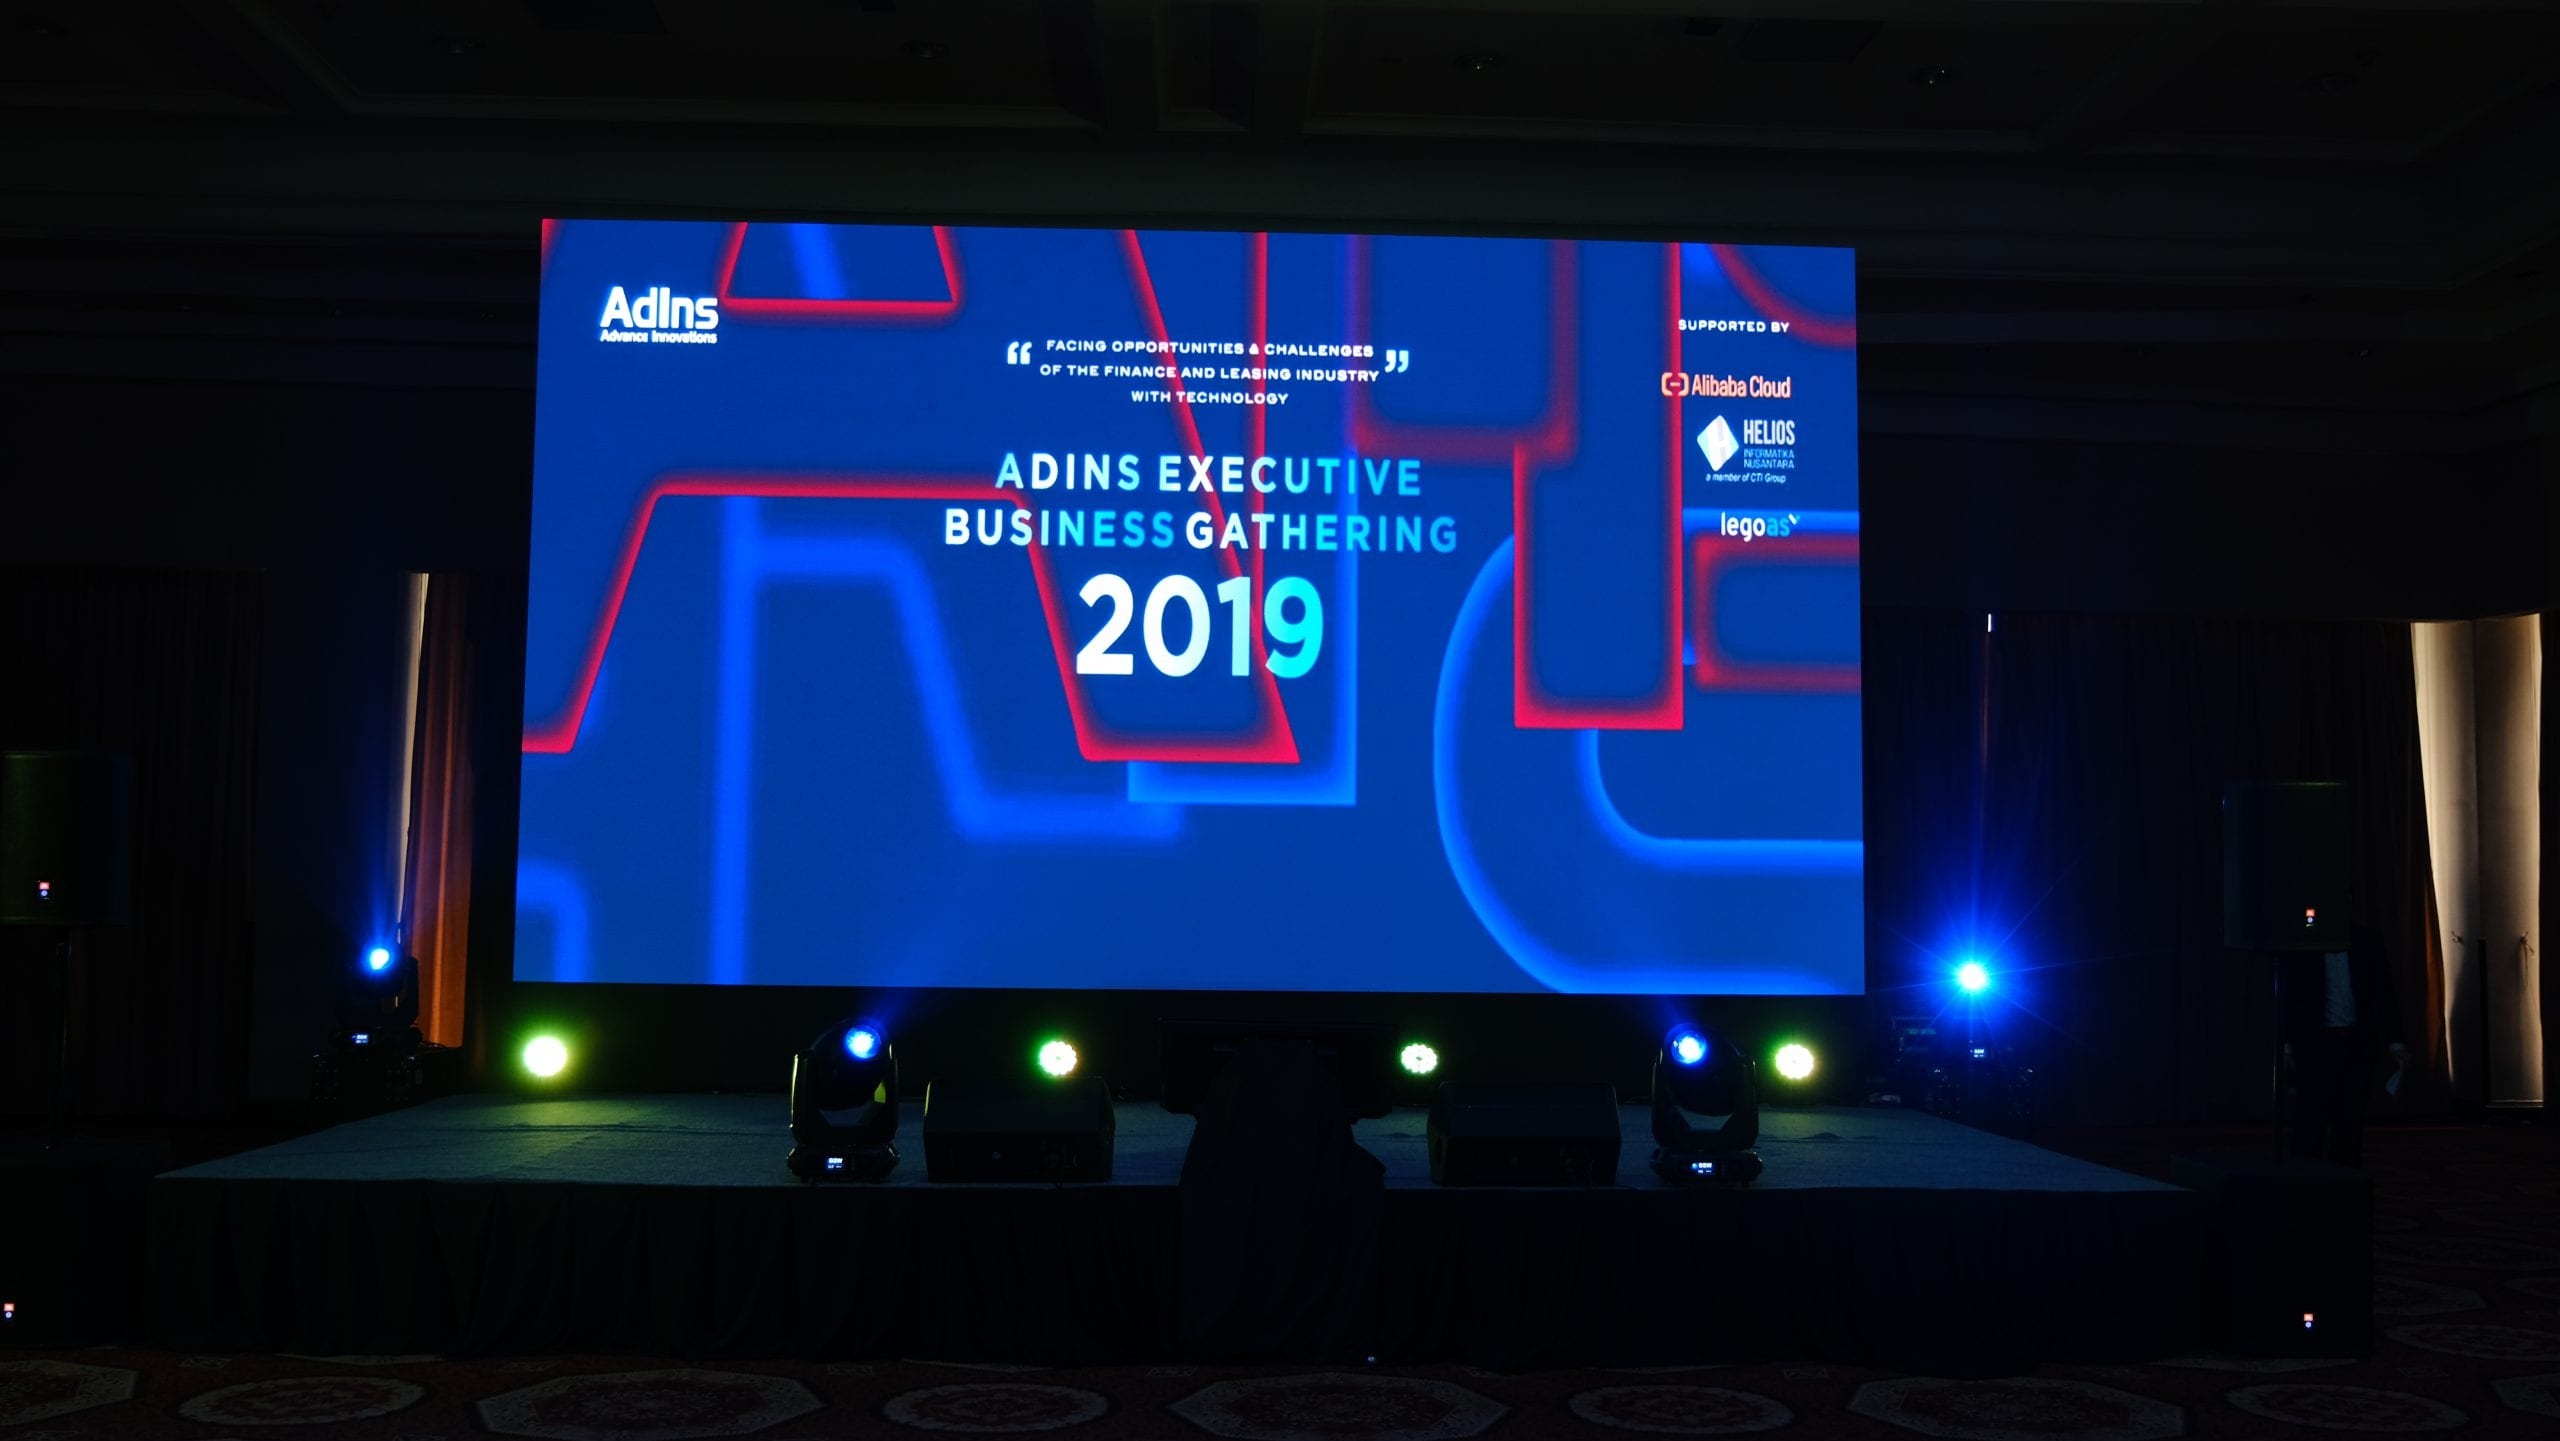 AdIns Held AdIns Executive Business Gathering 2019 to Increase Knowledge About Business and Technology in This Digital Era